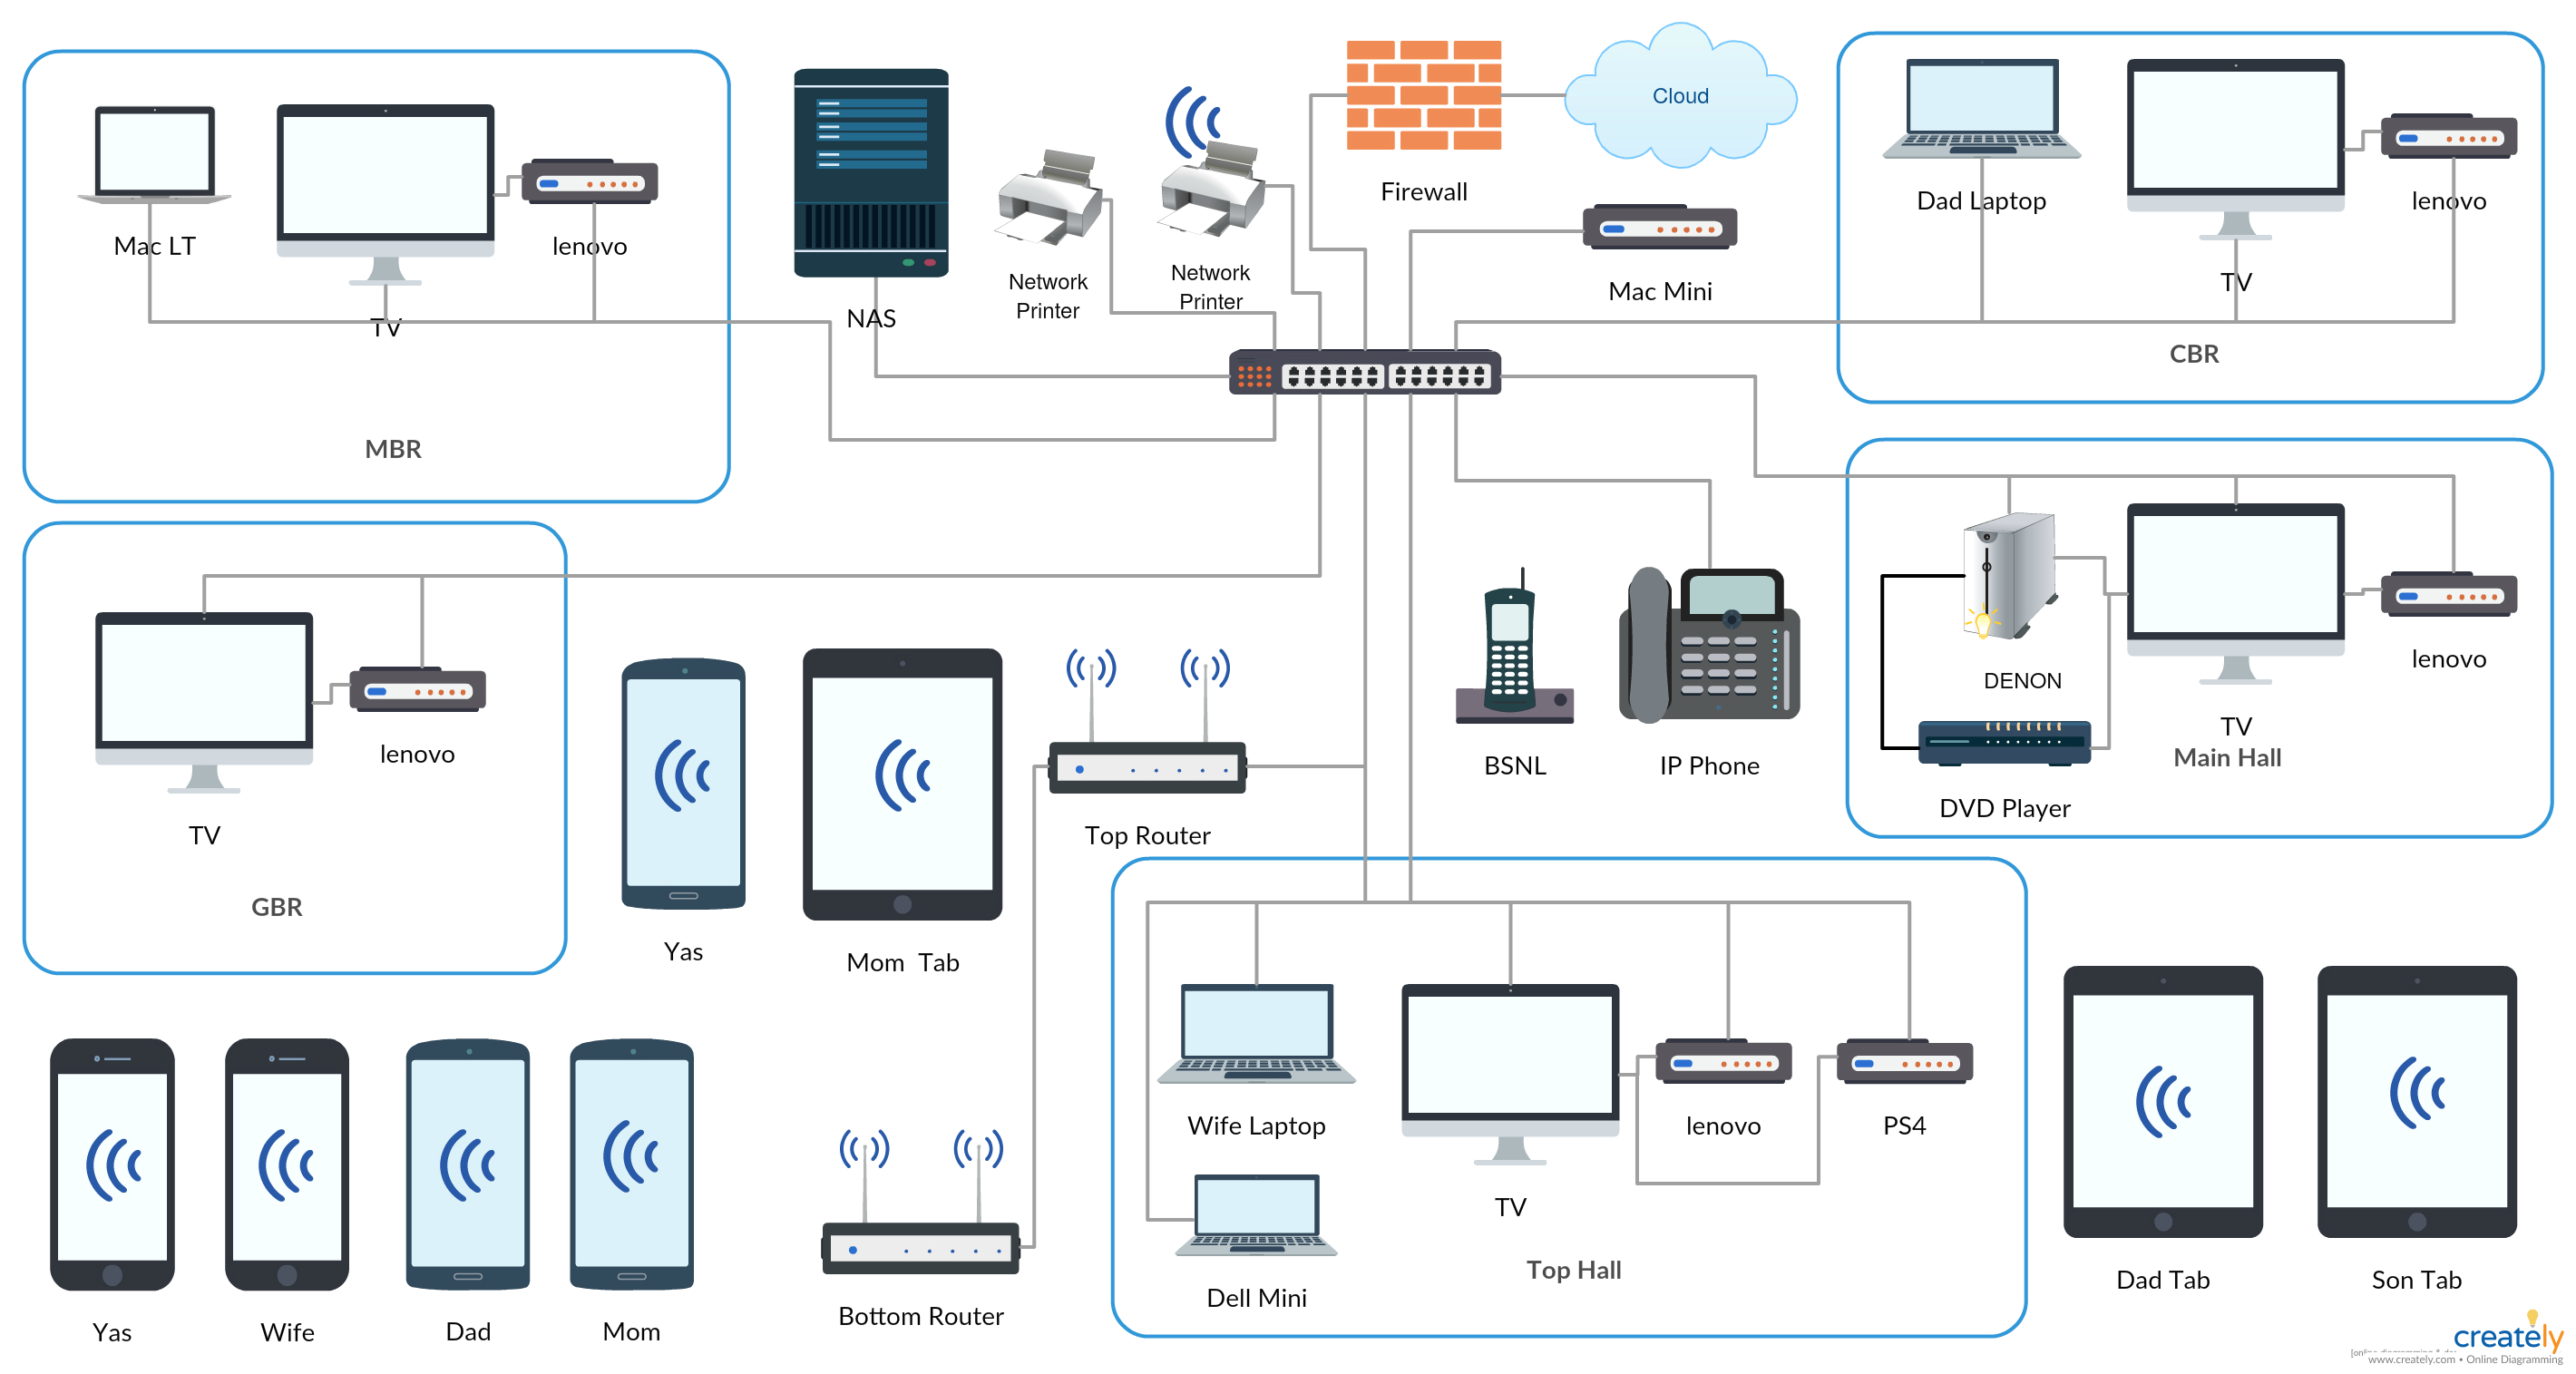 small resolution of home network plan this diagram shows the network setup using cisco networking objects you can use this to modify and create your own home network setup